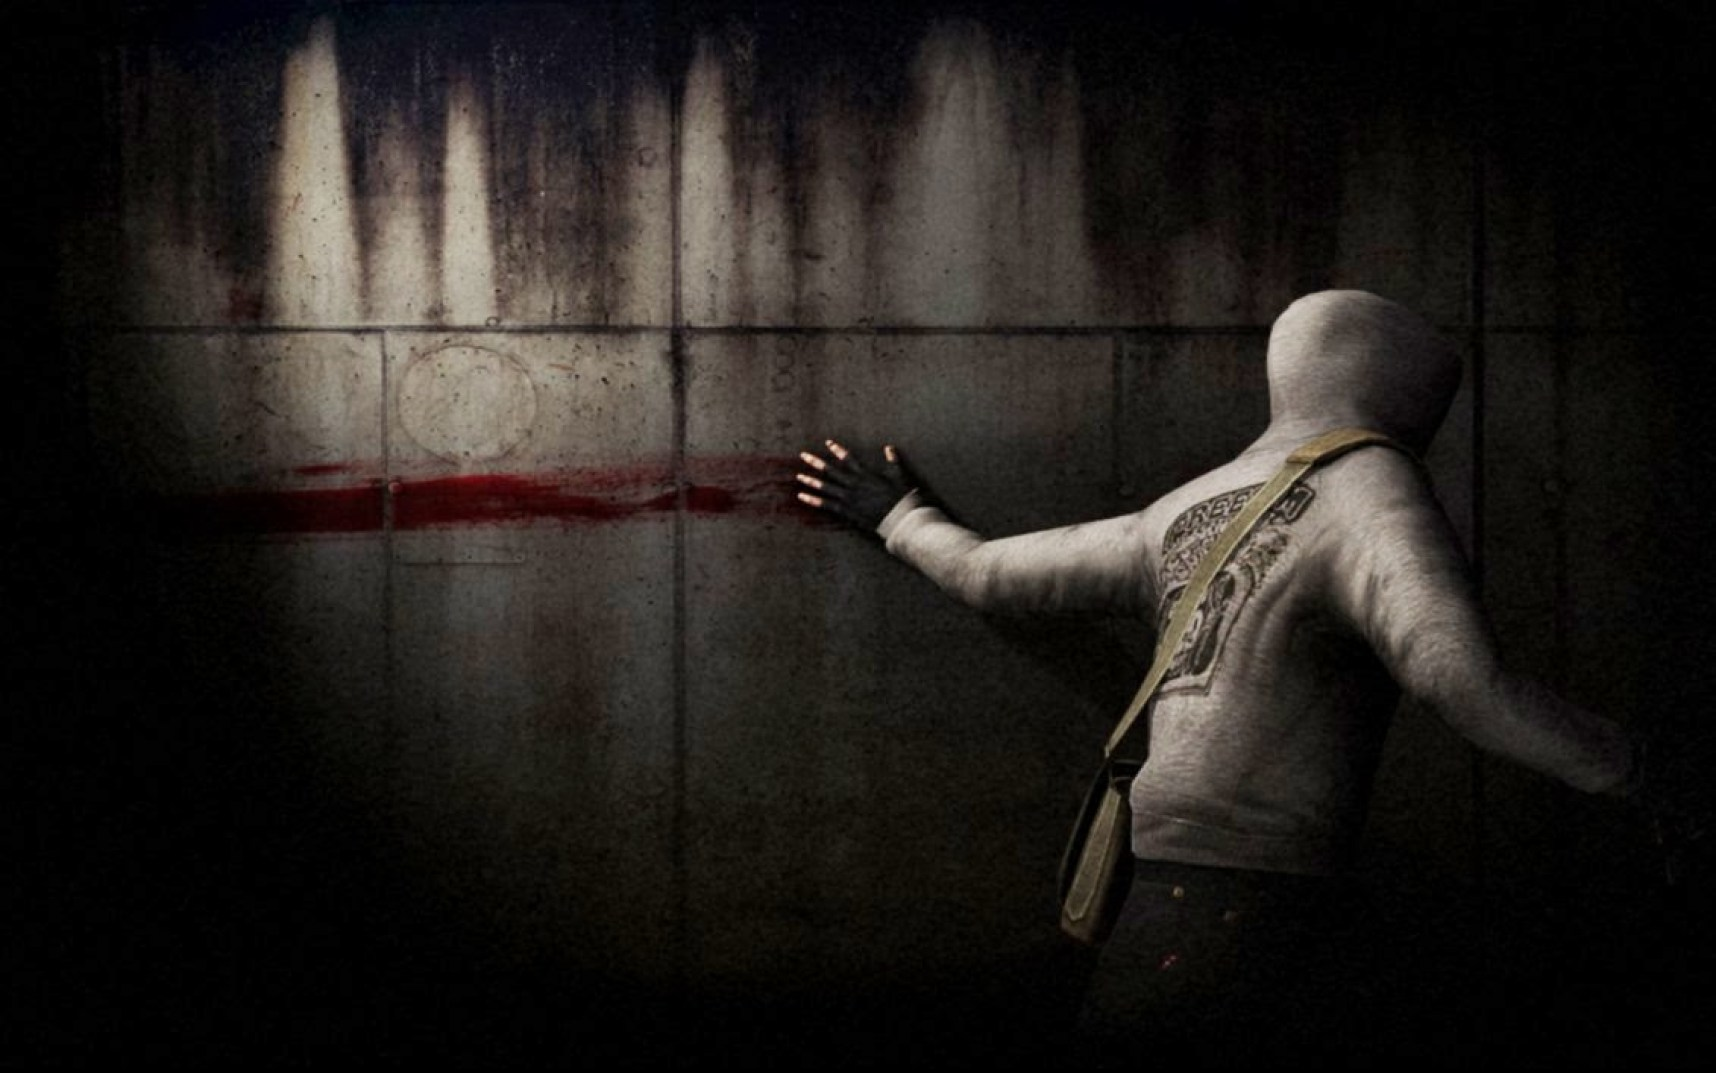 steamworkshop webupload previewfile 174744096 preview 1024x640 - CRY OF FEAR (SURVIVAL HORROR FREE TO PLAY)